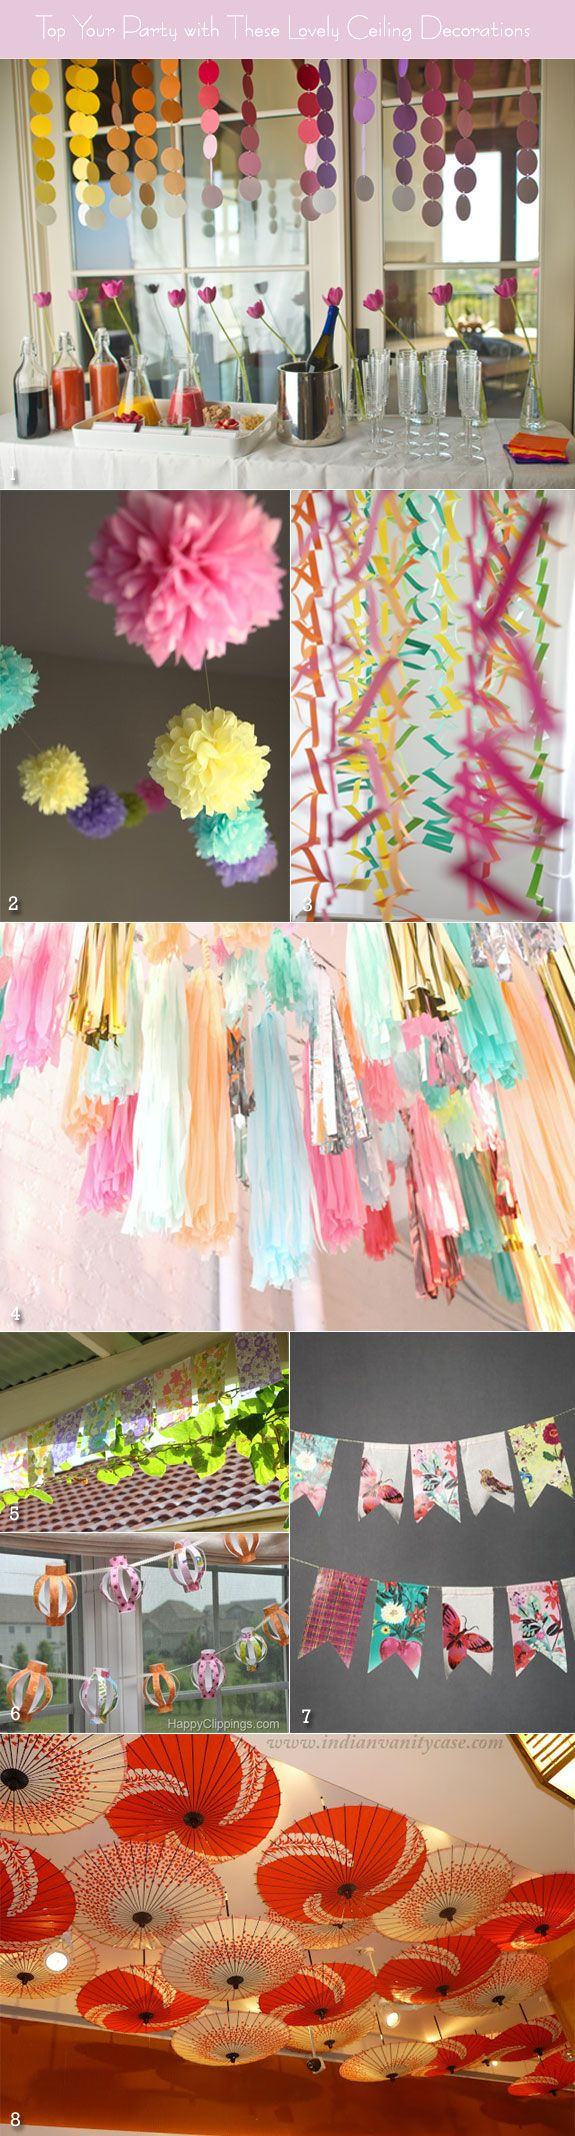 Ceiling Decorations to Glam Up Your Spring Wedding Shower: Wedding Shower, Spring Wedding, Paper Decoration, Bridal Shower, Kids Decor Ideas, Birthday Decor Diy Parties, Spring Parties Ideas For Kids, Ceilings Decor, Diy Kids Parties Decor